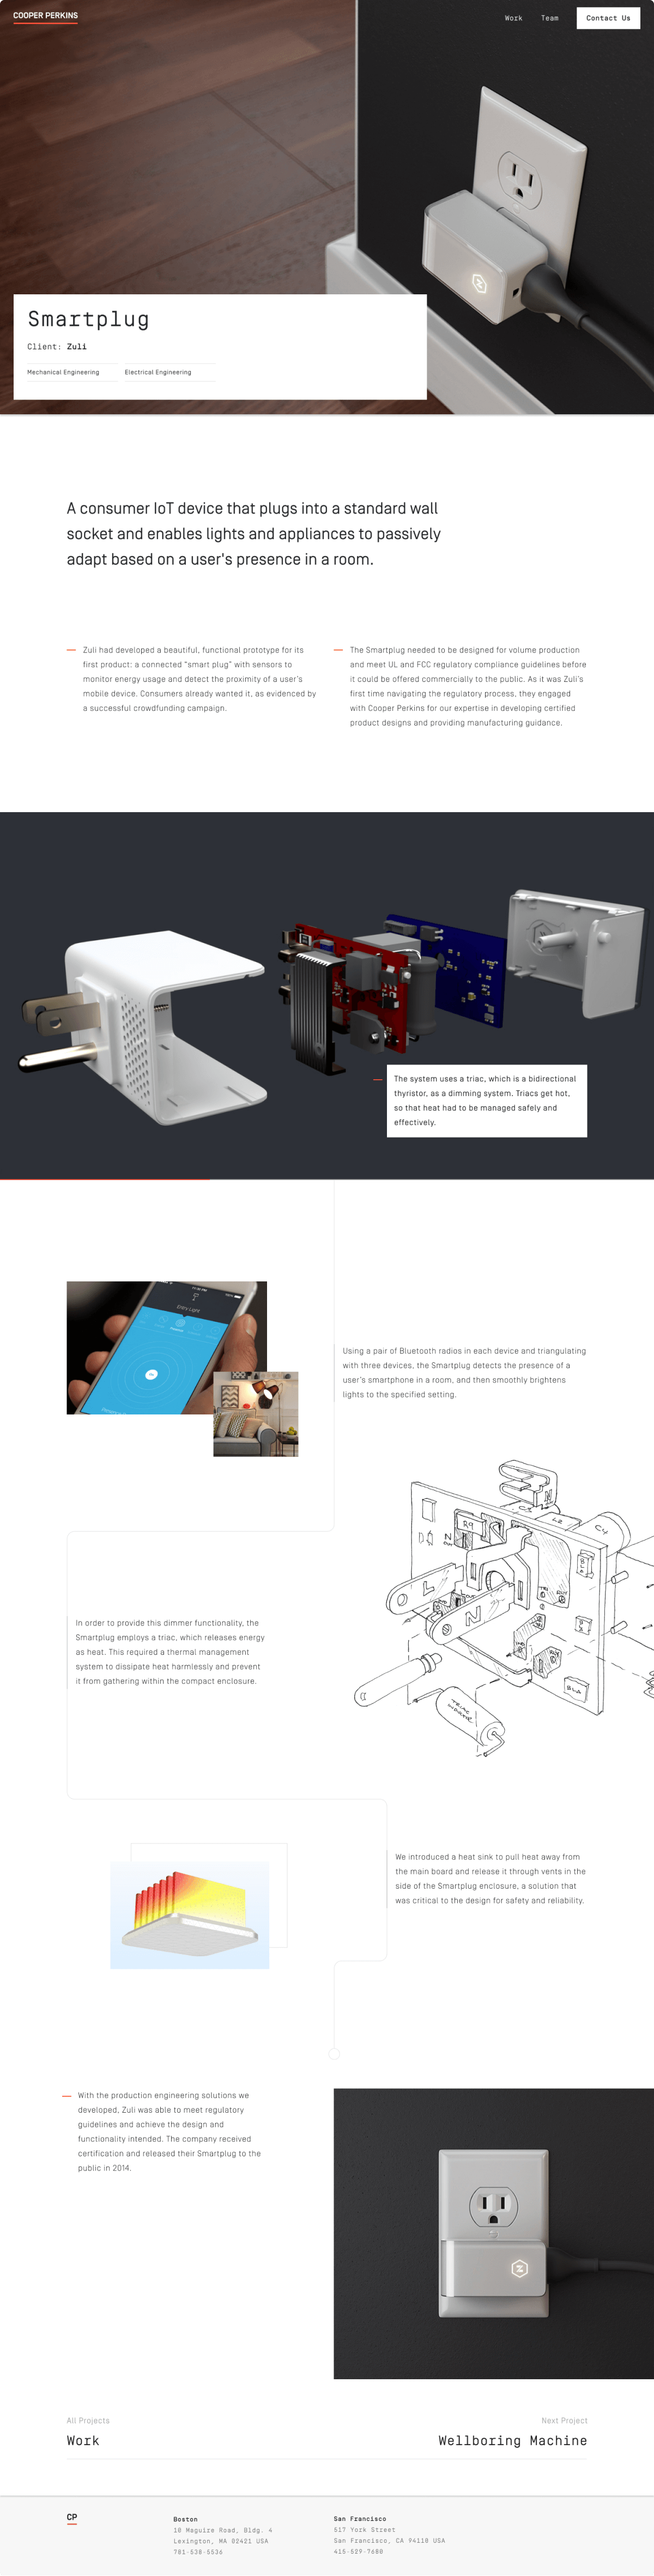 A case study explaining Cooper Perkins' work on a smartplug engineering project.